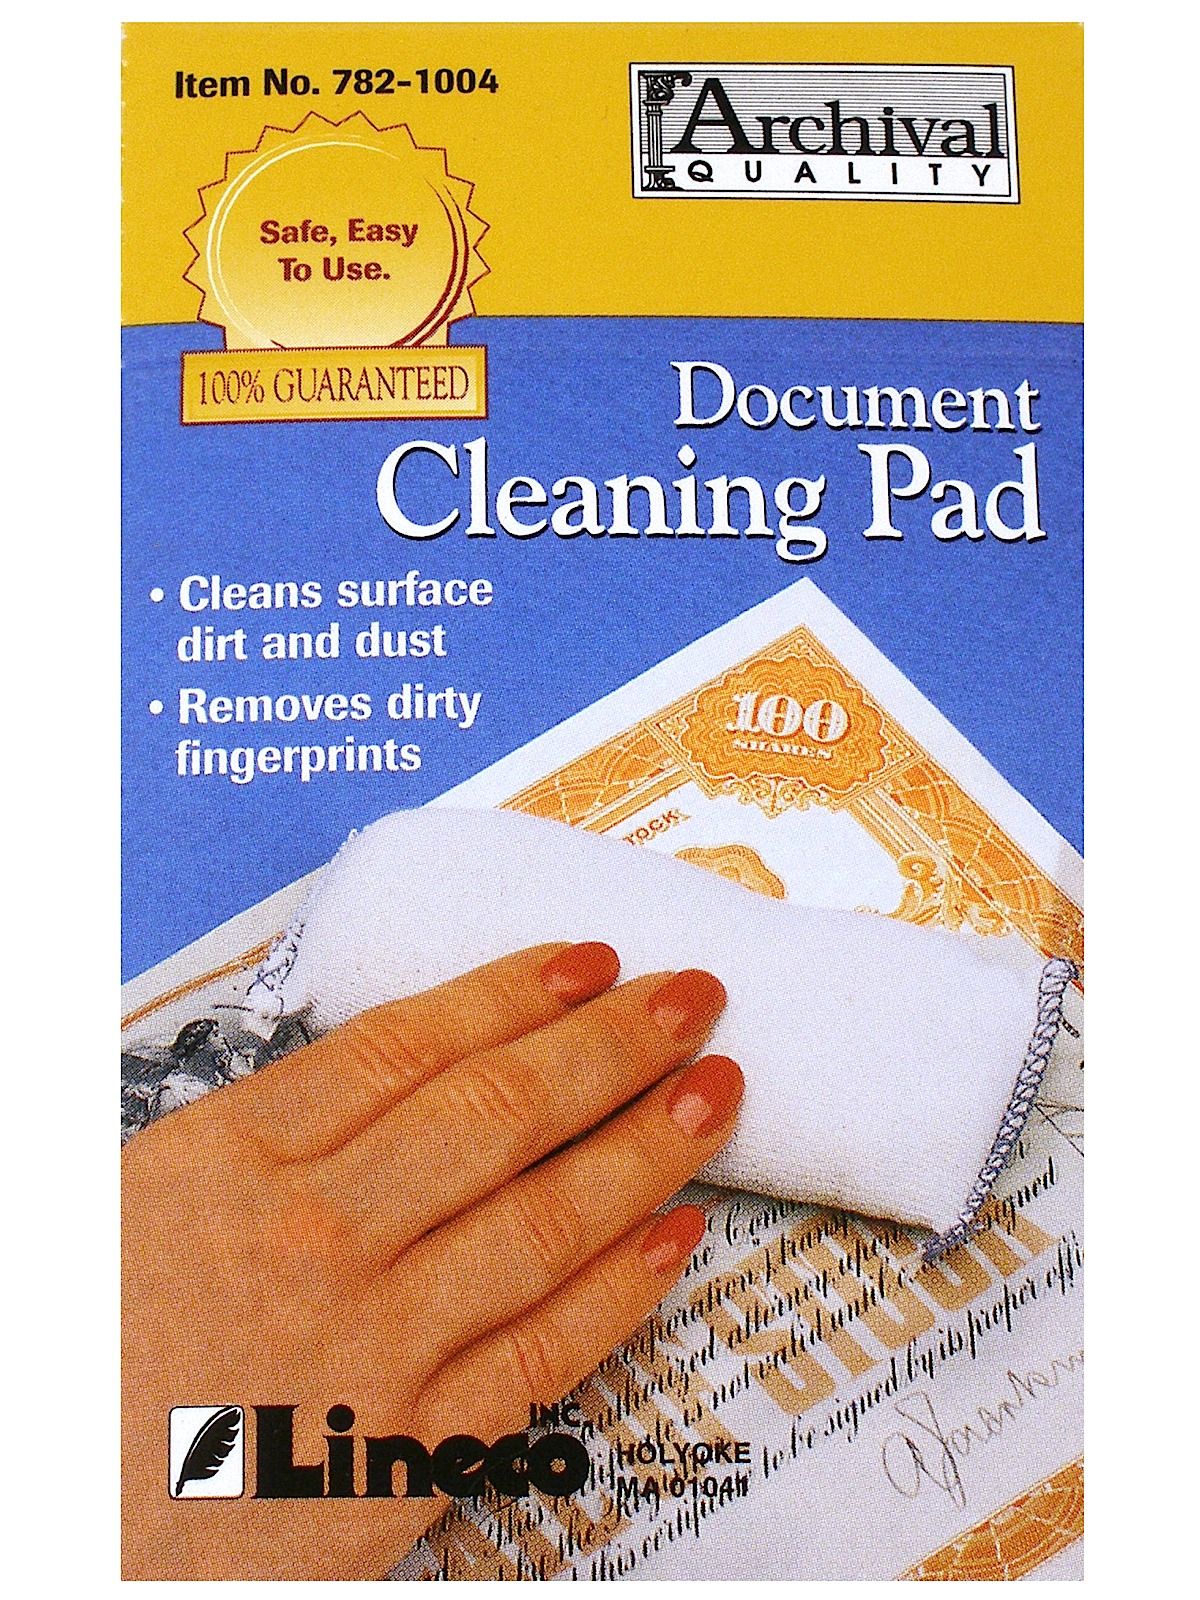 Document Cleaning Pads